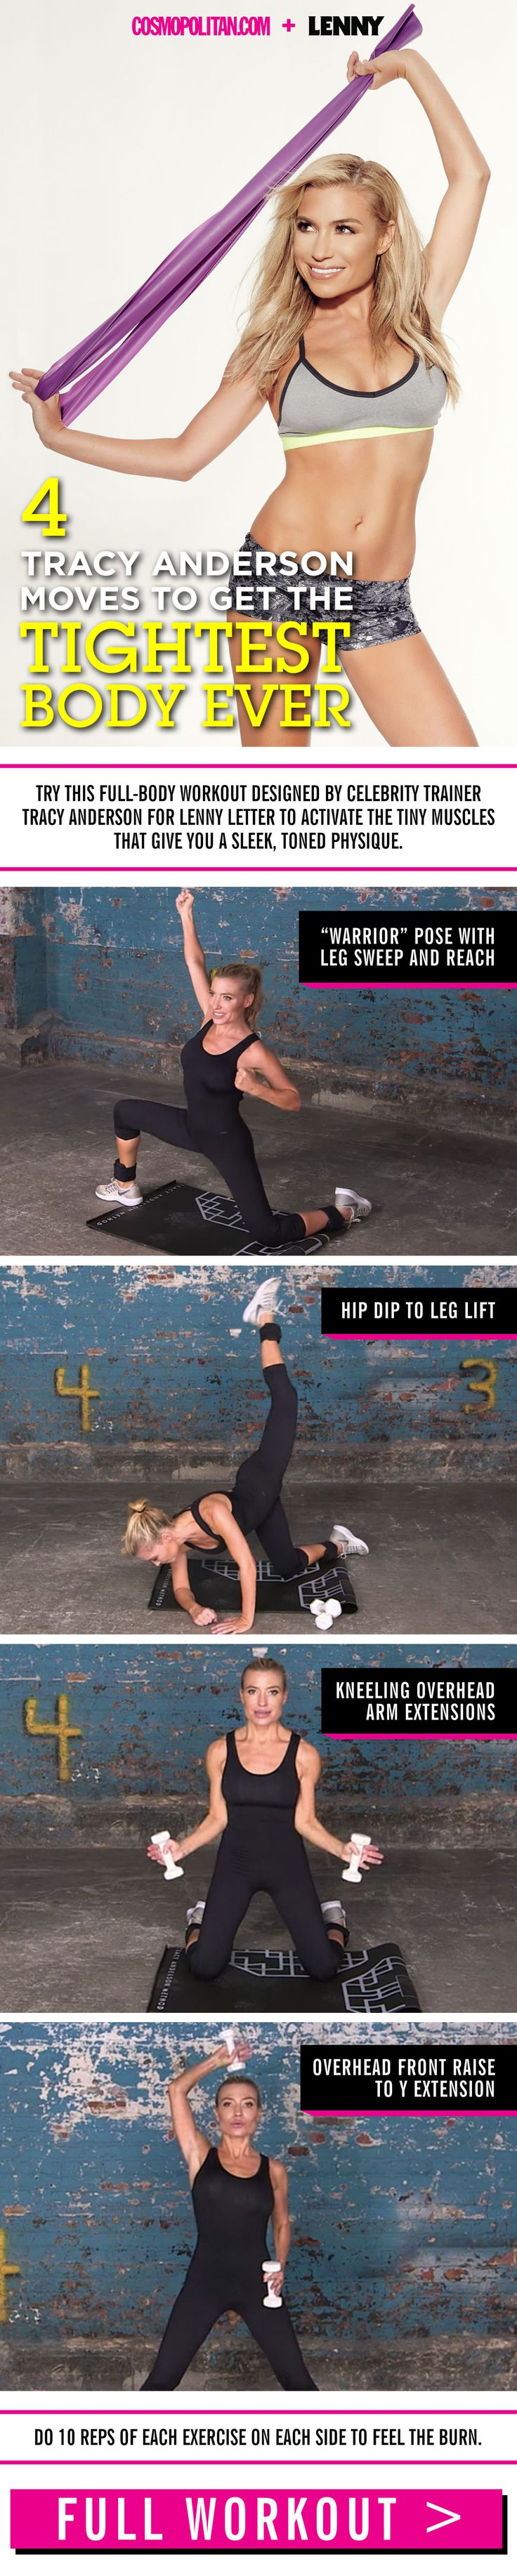 4 Tracy Anderson Moves to Get the Tightest Body Ever  - Cosmopolitan.com